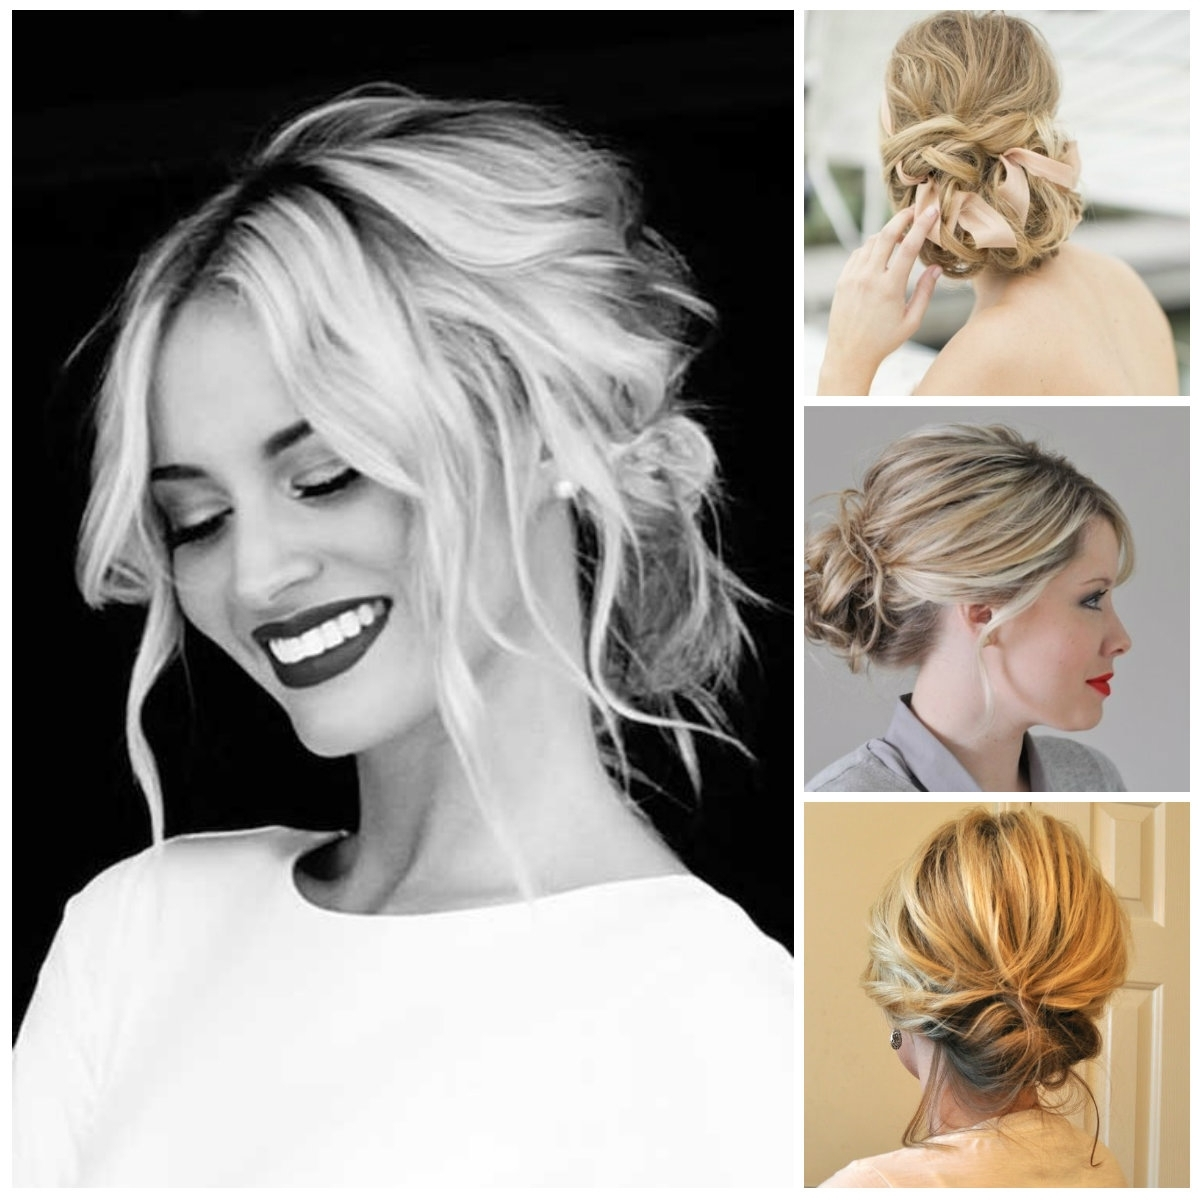 Favorite Wedding Hairstyles For Medium Length Fine Hair Within Shaggy Hairstyles For Medium Length Hair – Hairstyle For Women & Man (View 8 of 15)